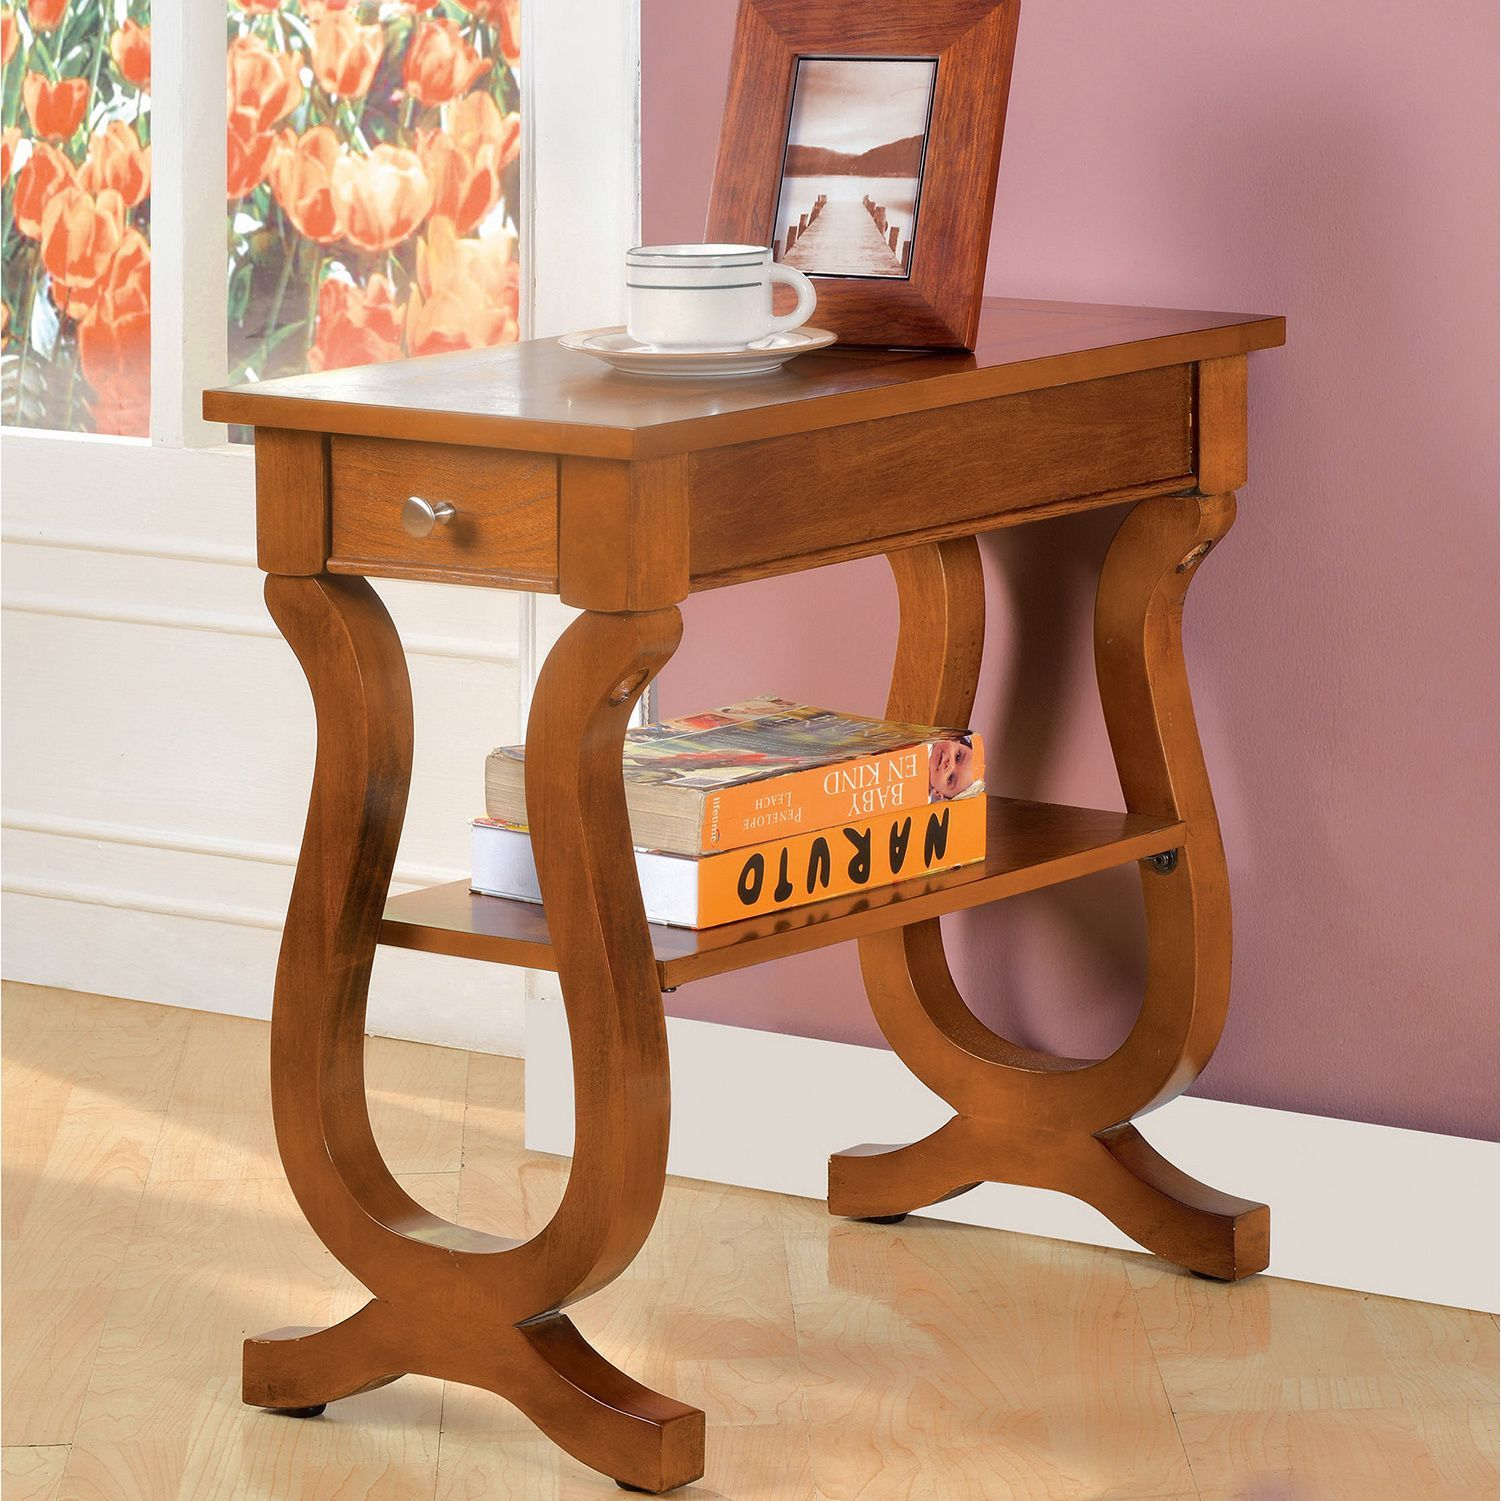 Furniture of America Antique Belton Side Table with Storage Drawer. Occasional Tables ... & Furniture of America Antique Oak Belton Side Table with Storage ...